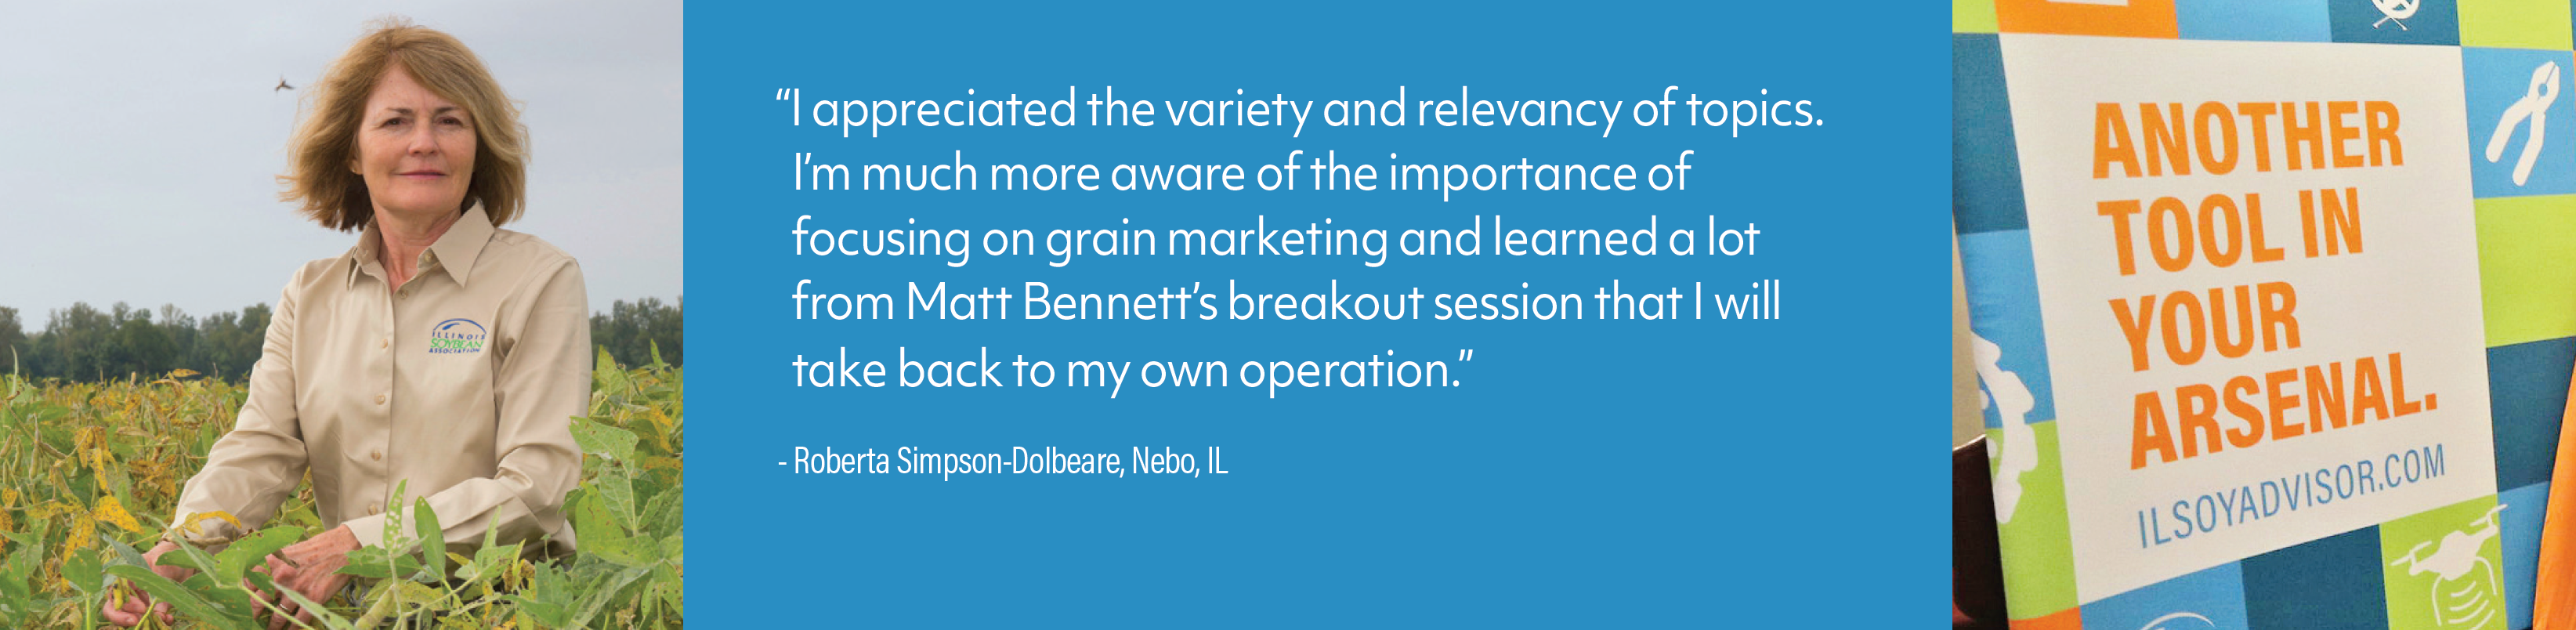 """I appreciated the variety and relevancy of topics. I'm much more aware of the importance of focusing on grain marketing and learned a lot from Matt Bennett's breakout session that I will take back to my own operation."""